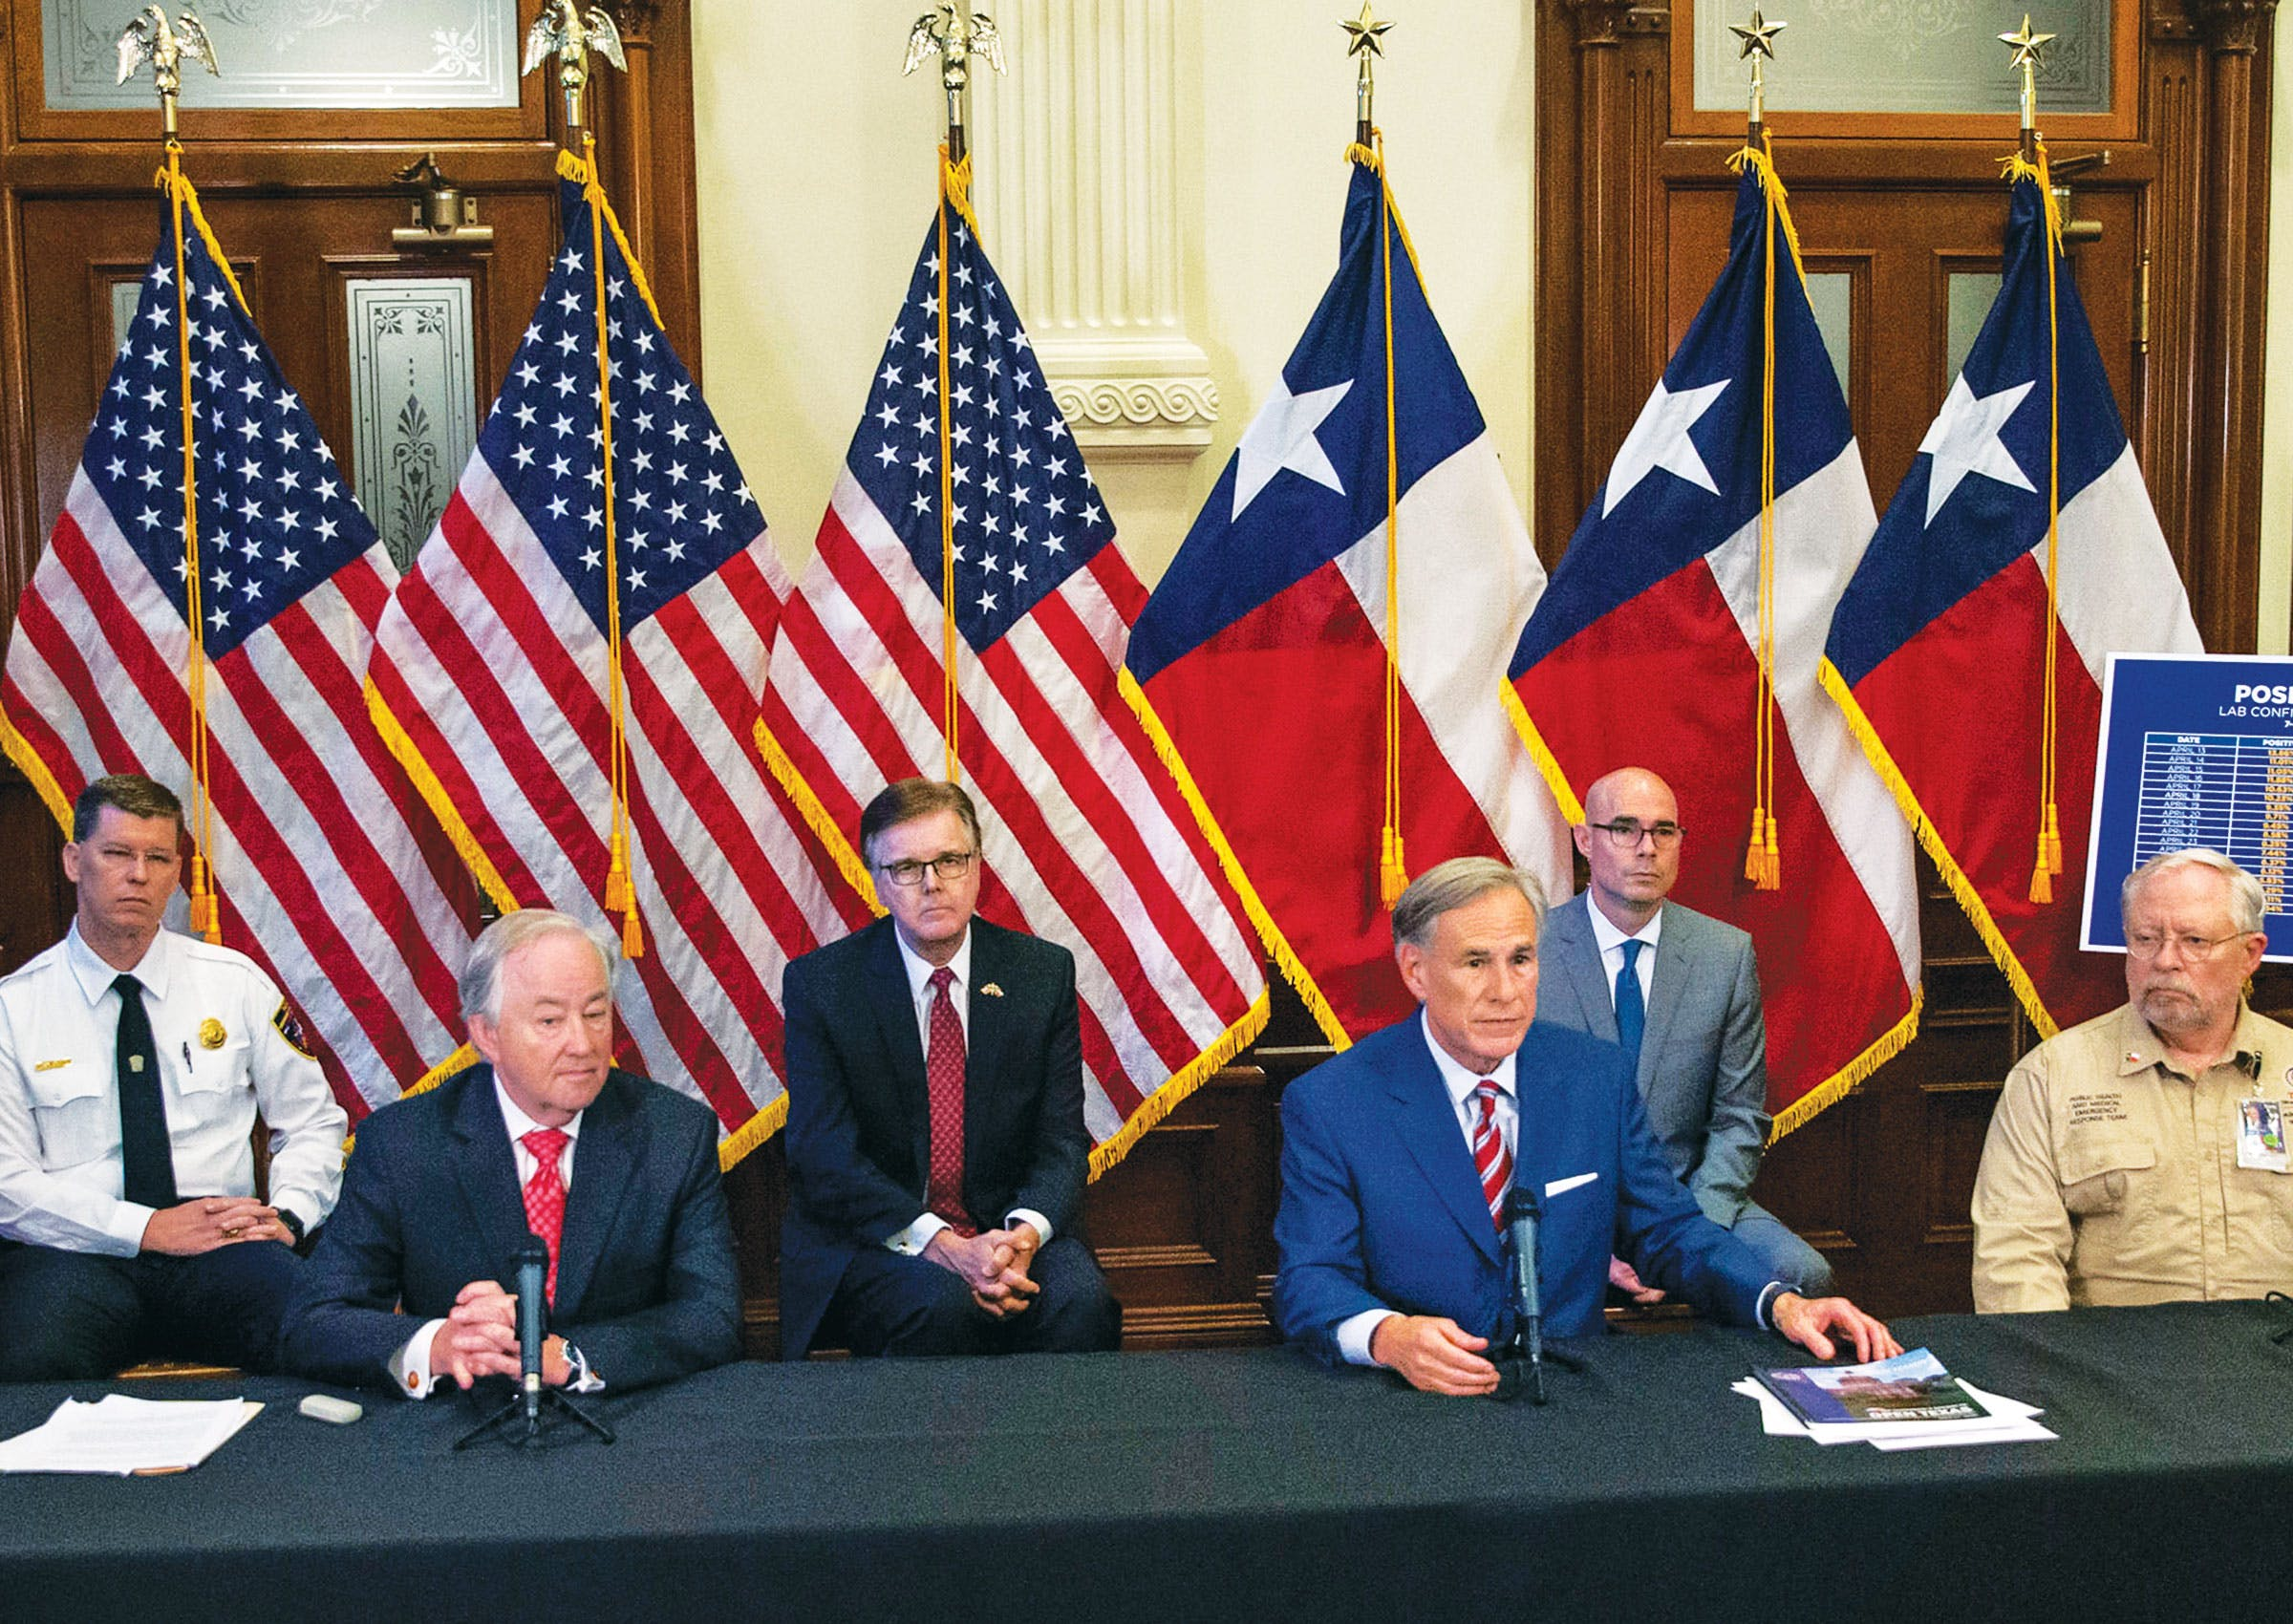 Texas Governor Wants A Constitutional Convention, Destroying America In 3… 2… 1…